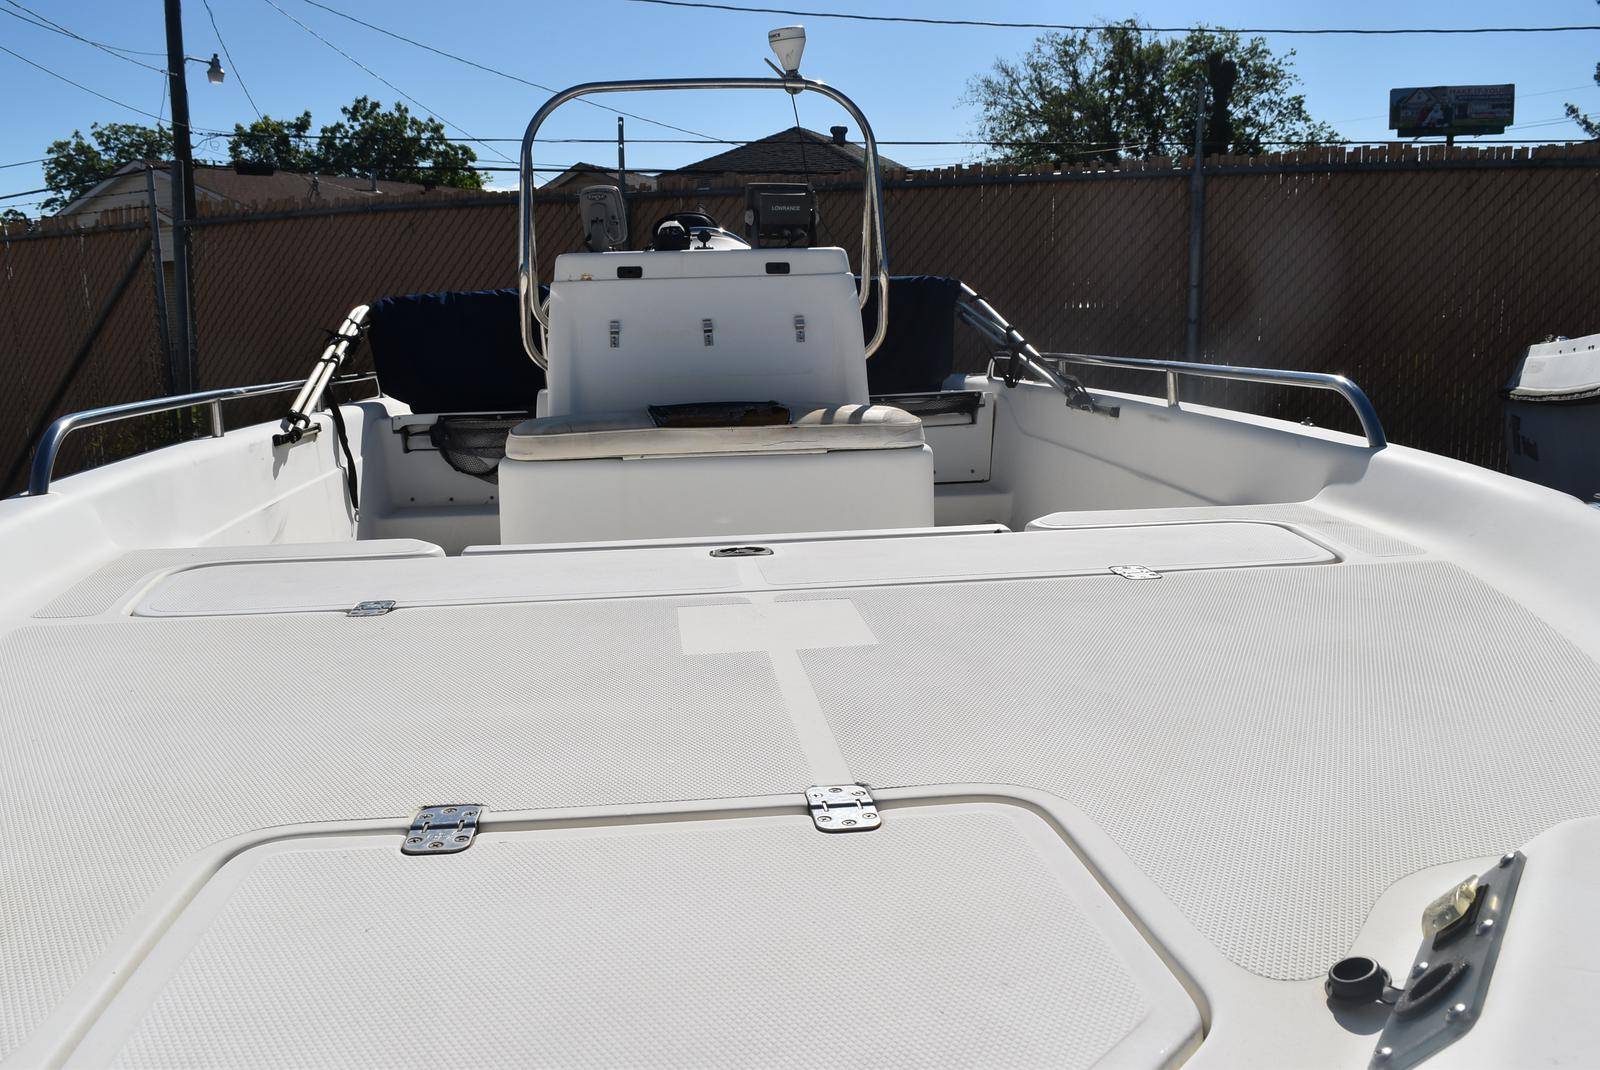 2003 Fish Master boat for sale, model of the boat is 19 & Image # 6 of 6